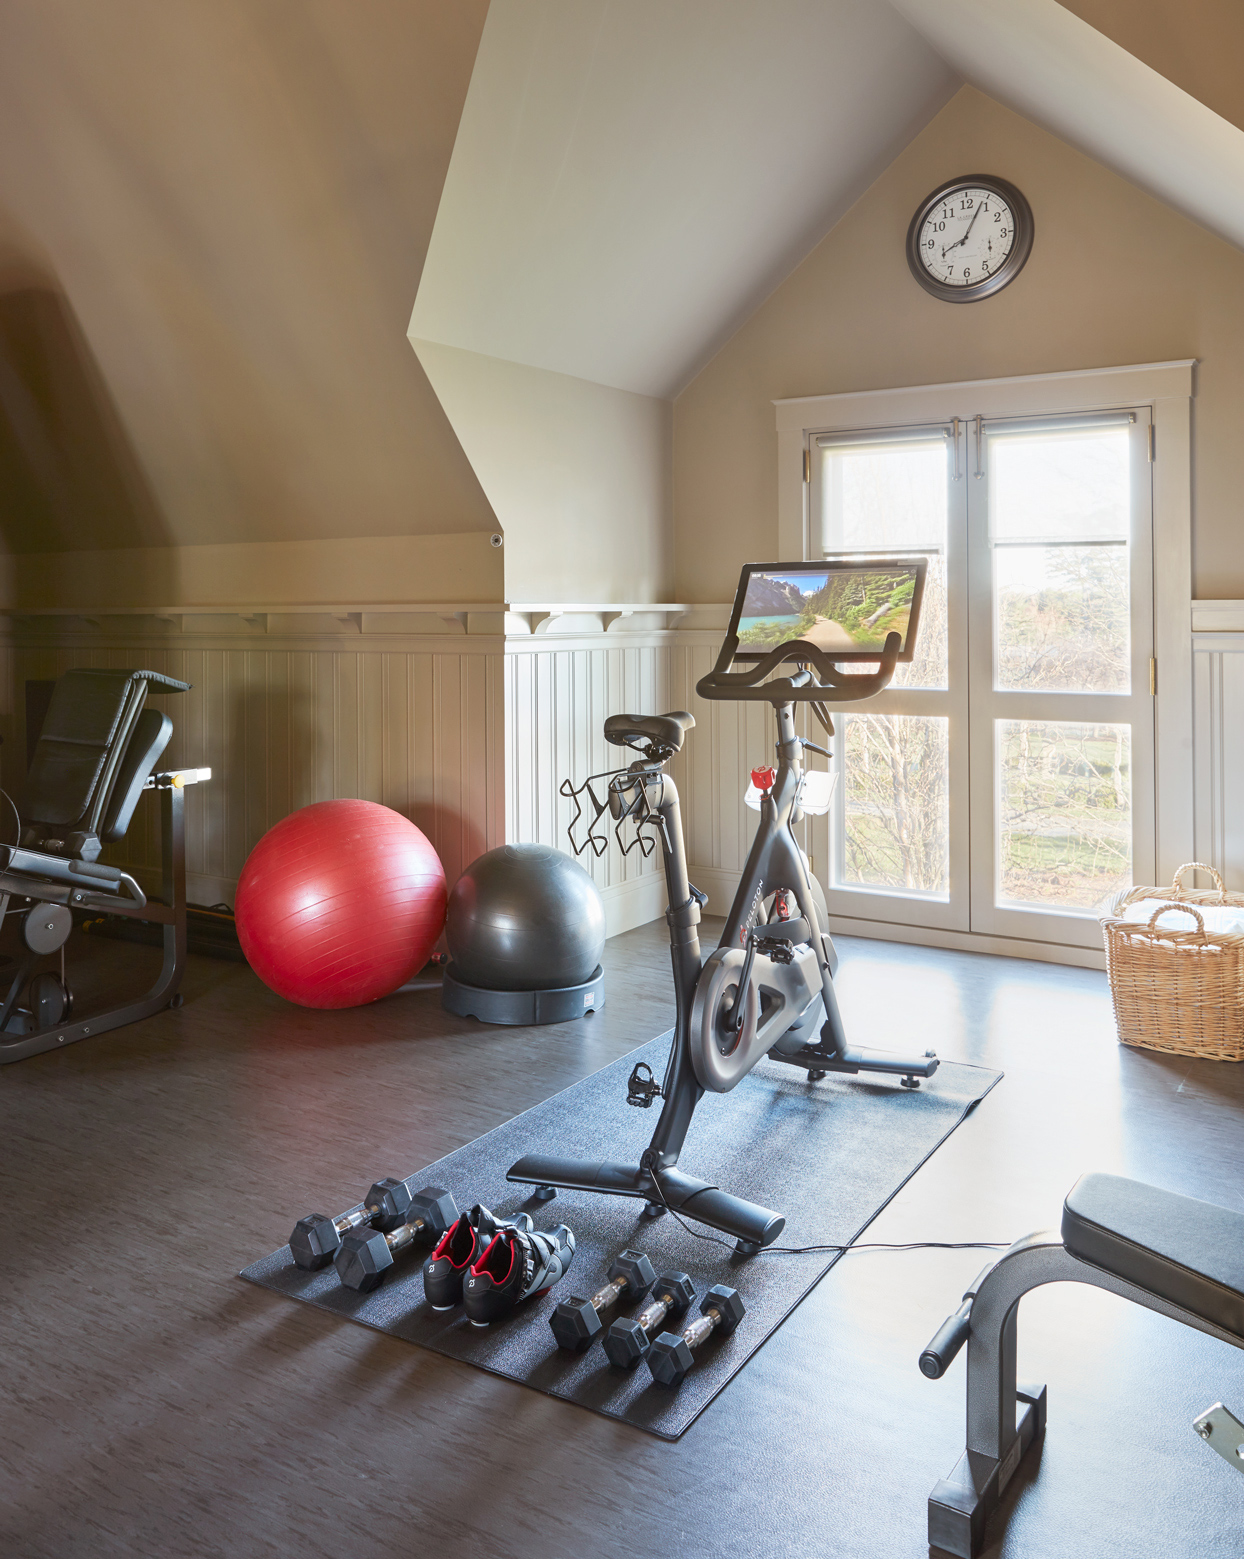 Martha's exercise room with Peloton bike and weights